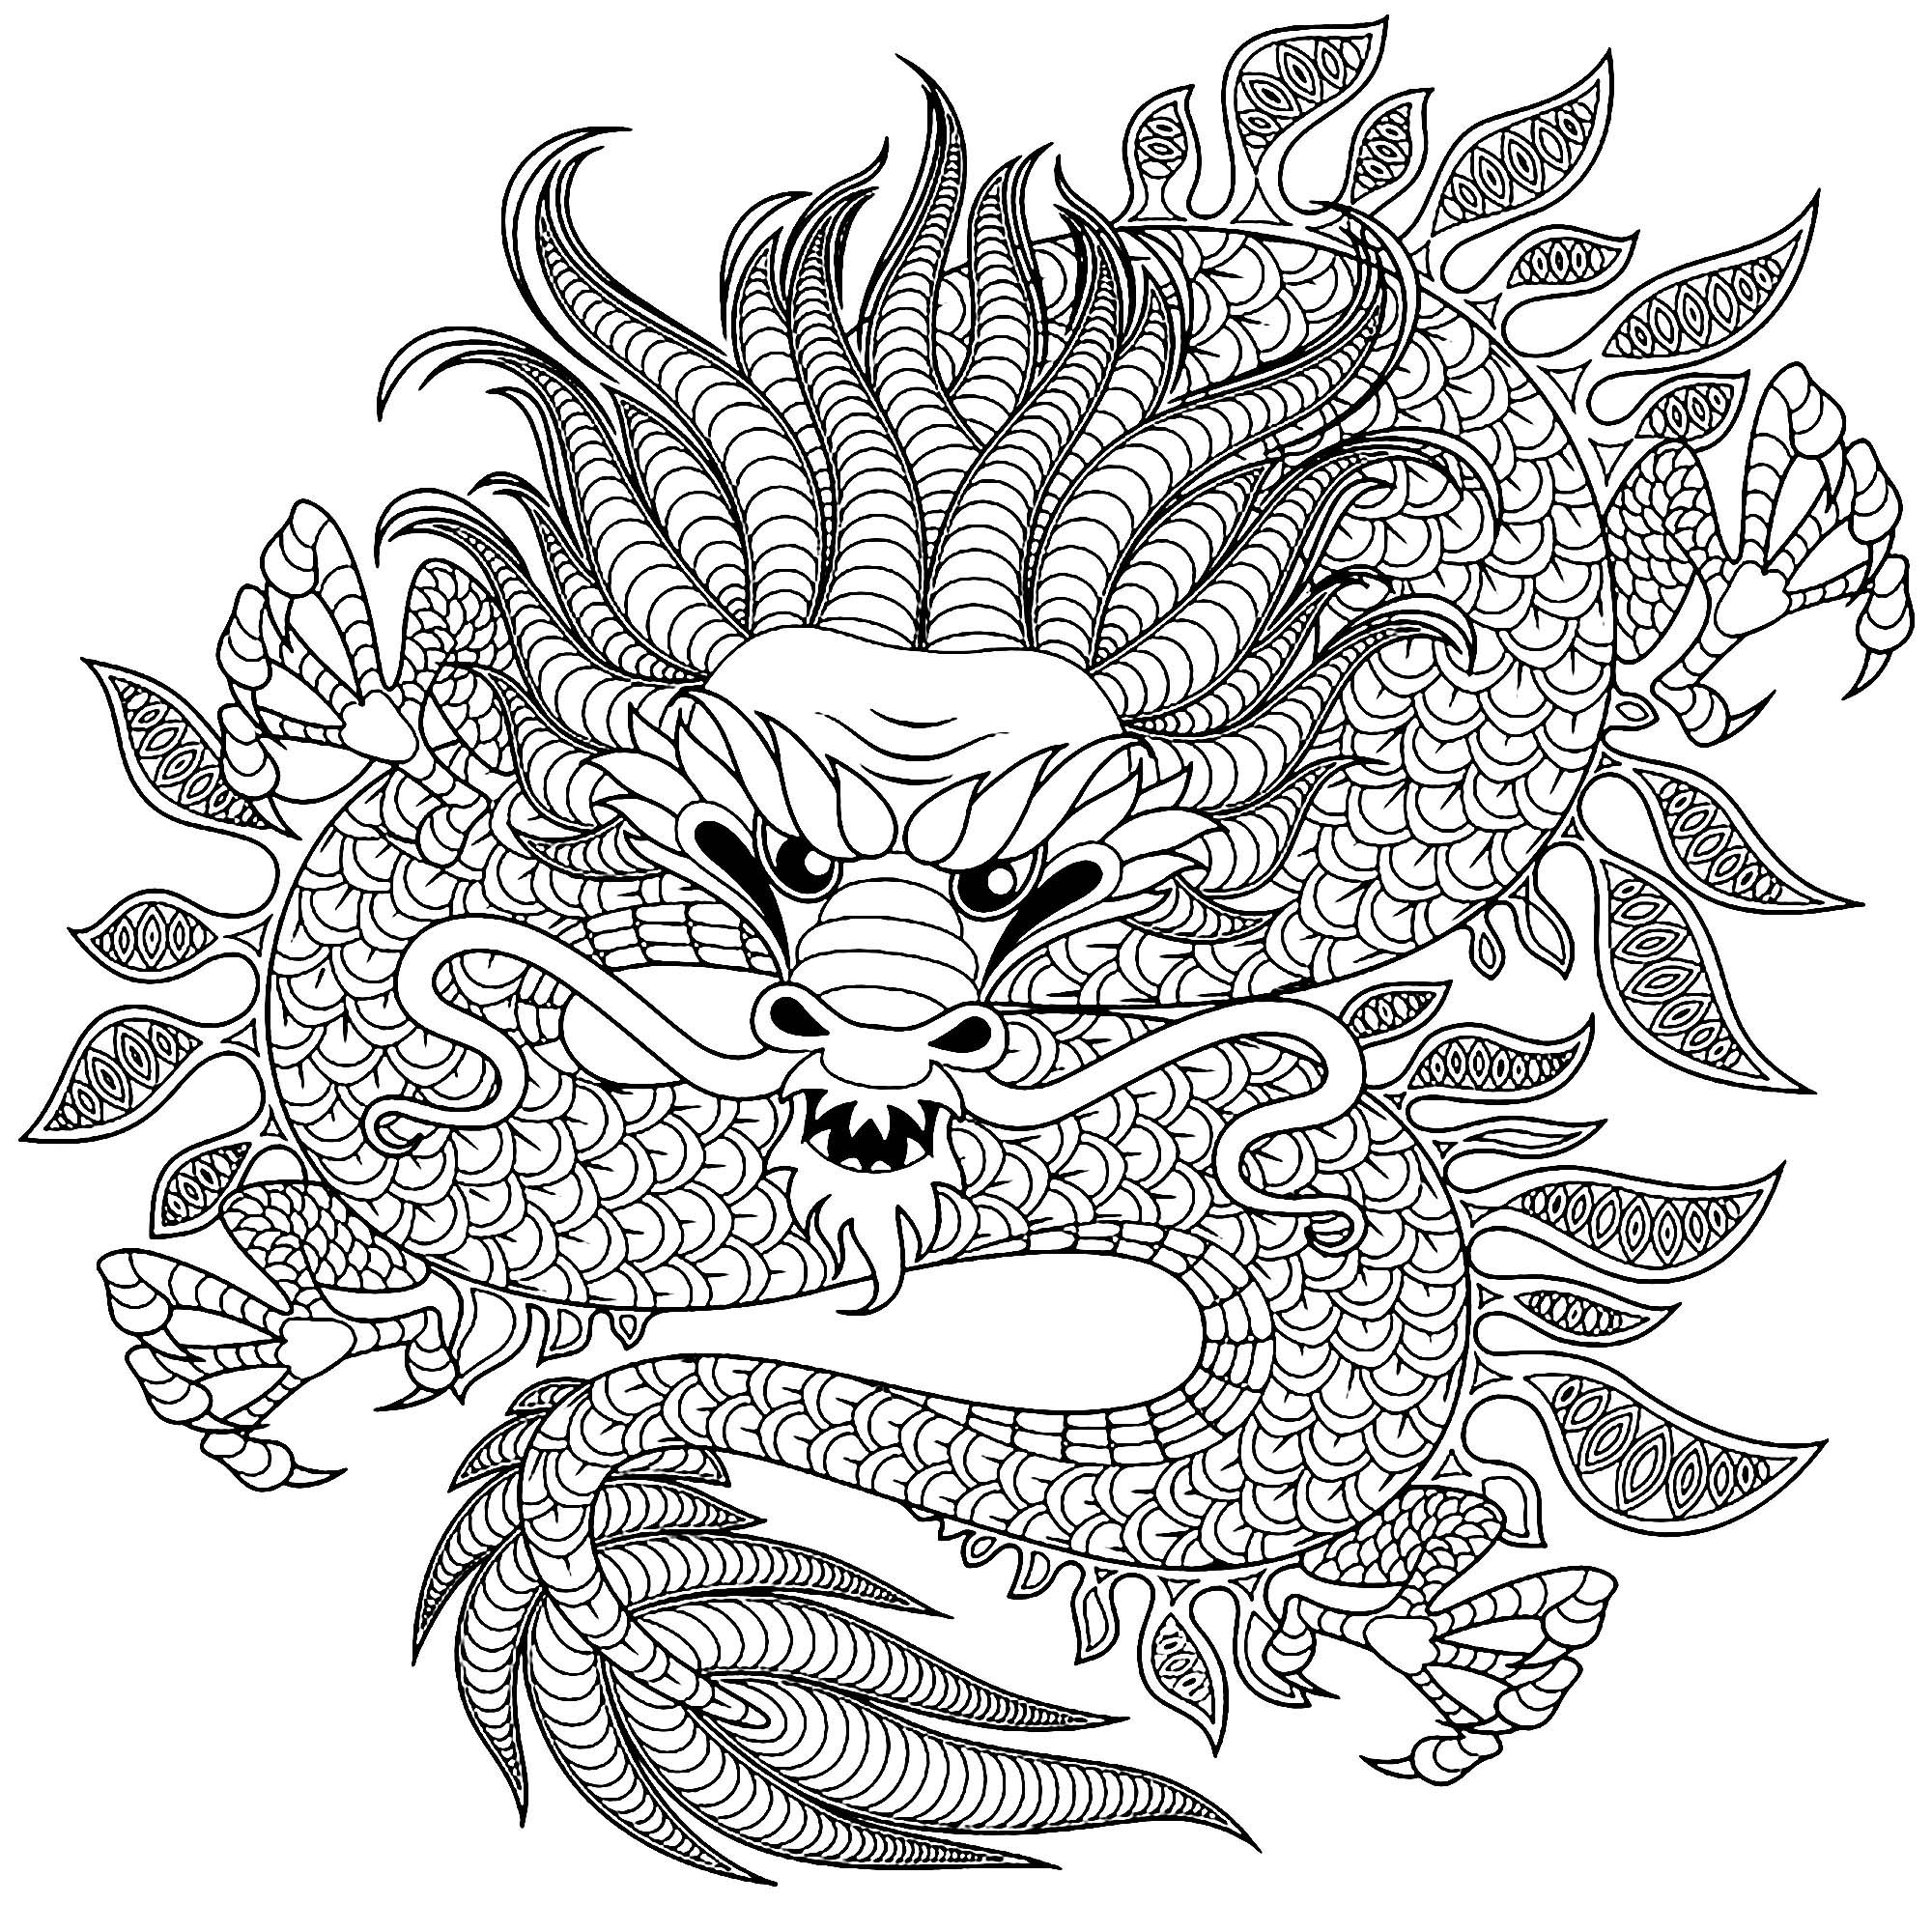 dragon coloring pages sleeping beauty dragon coloring page free printable coloring pages dragon